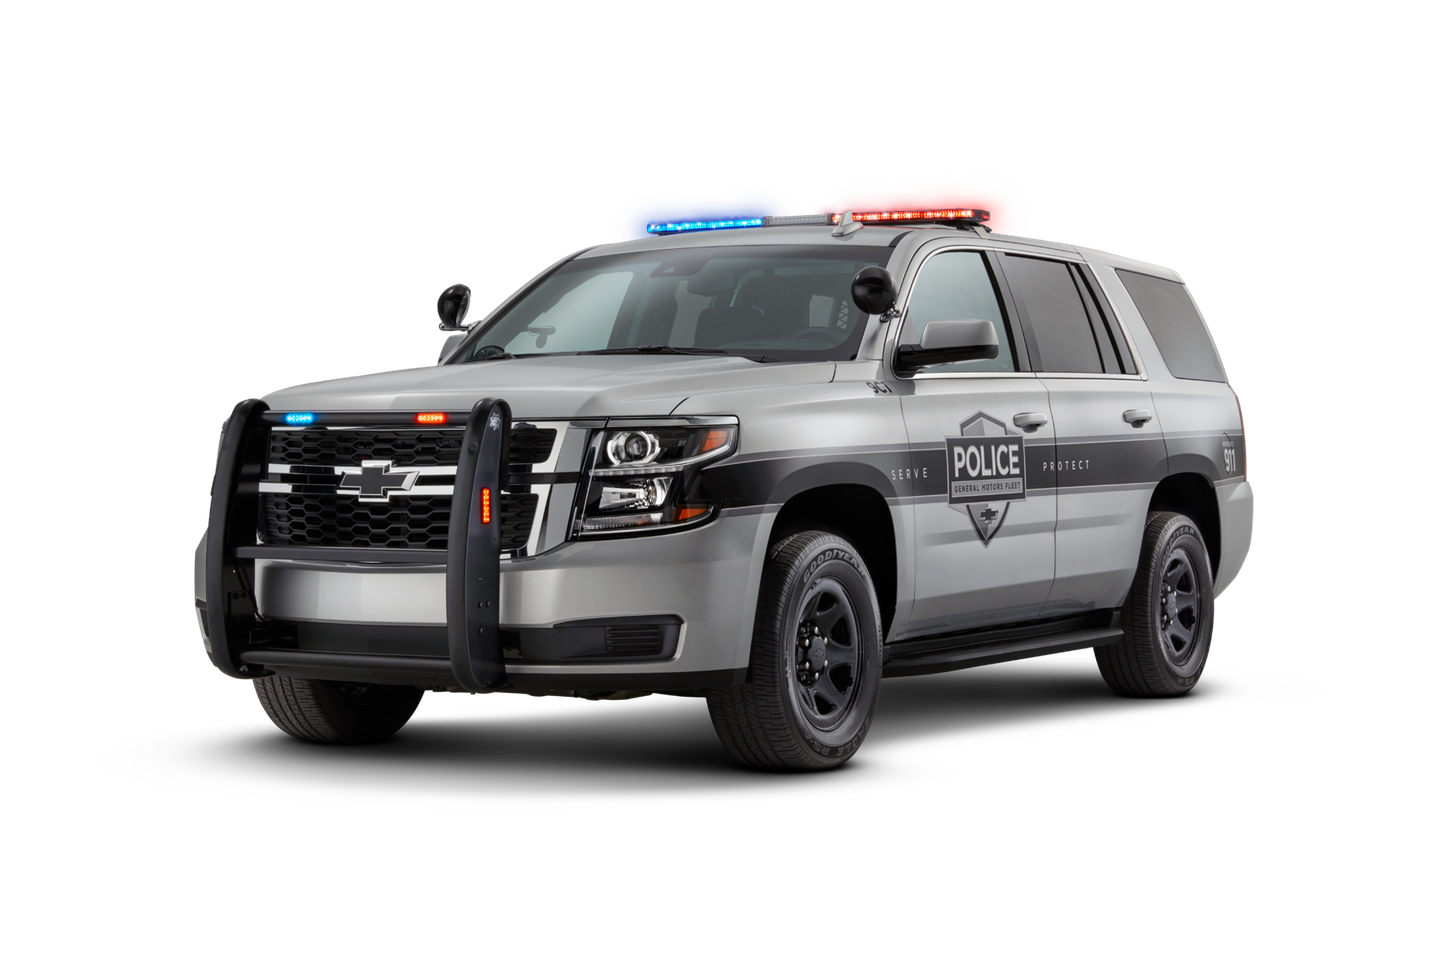 2019 Chevrolet Tahoe Ppv Police Pursuit Vehicle From General Motors Fleet Law Enforcement Vehicles Officer